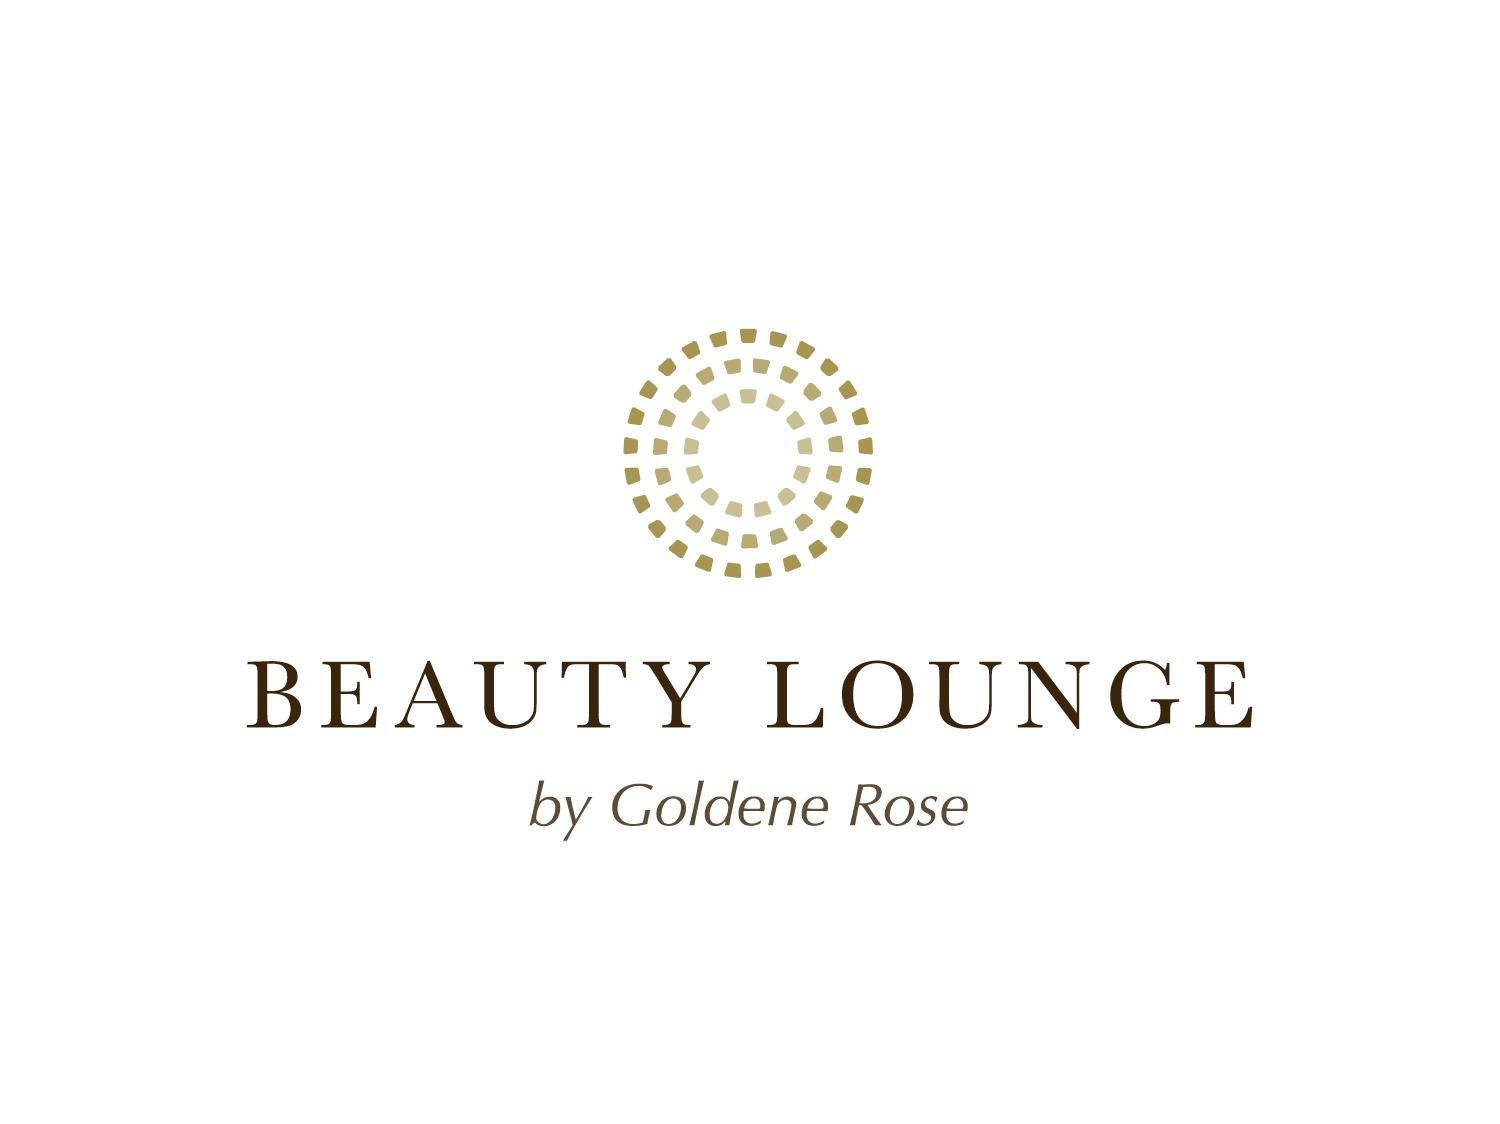 Beauty Lounge Hotel Goldene Rose Wielander